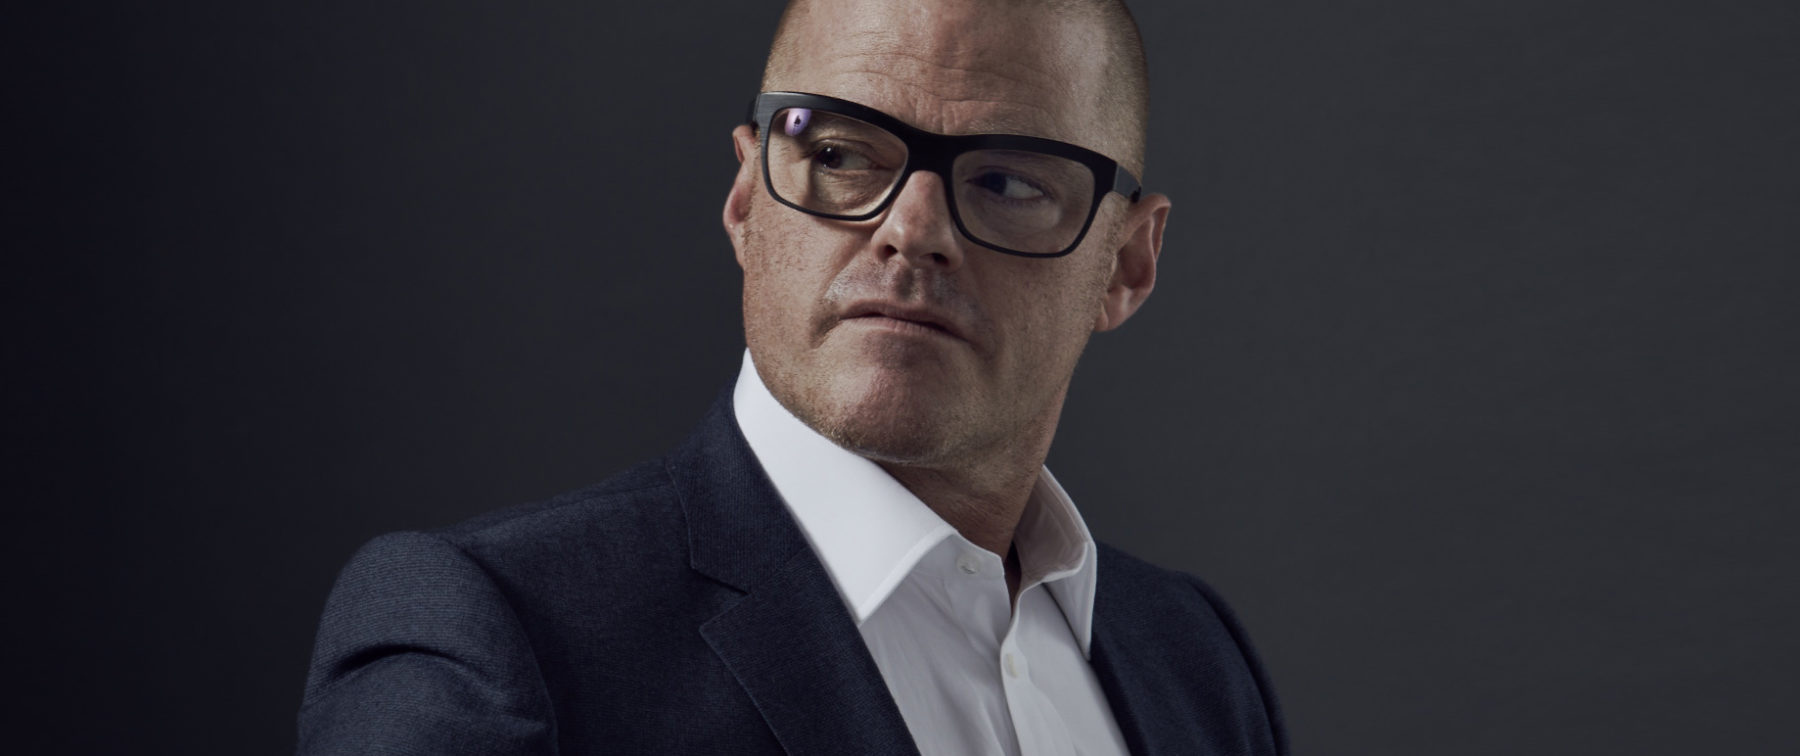 heston blumenthal wears glasses in a suit